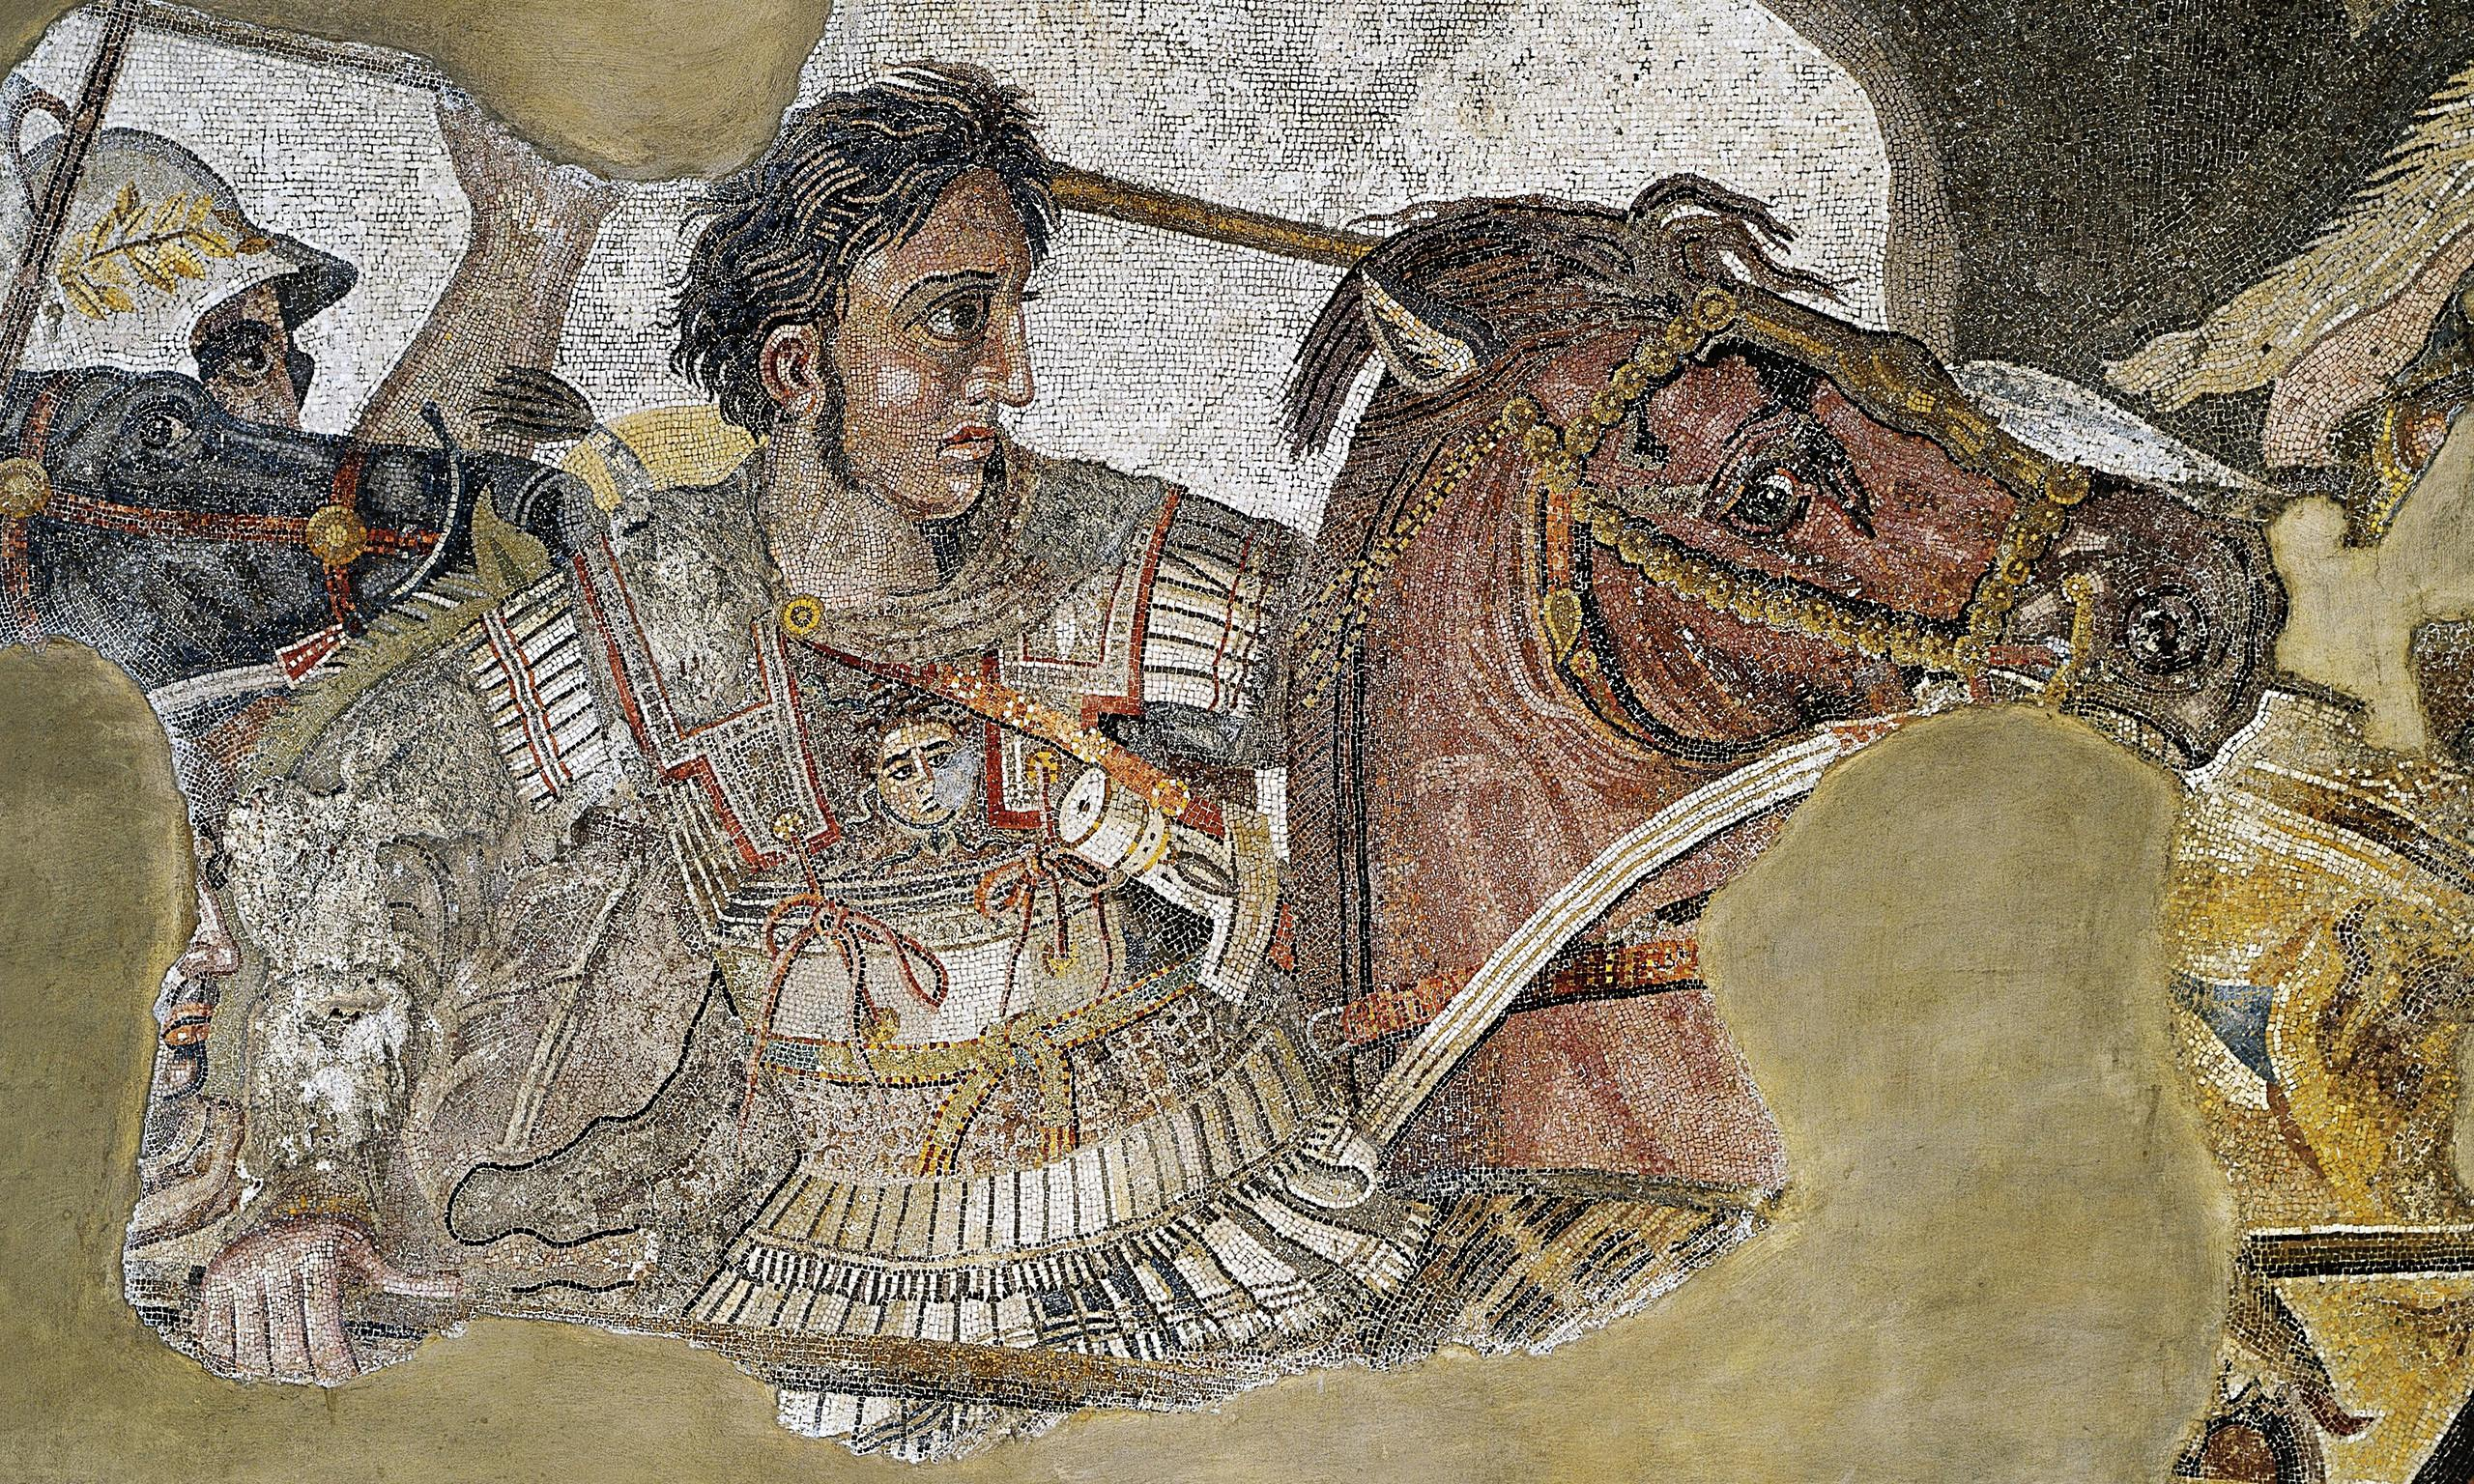 Alexander the Great & the Macedonians were strong because they were united.